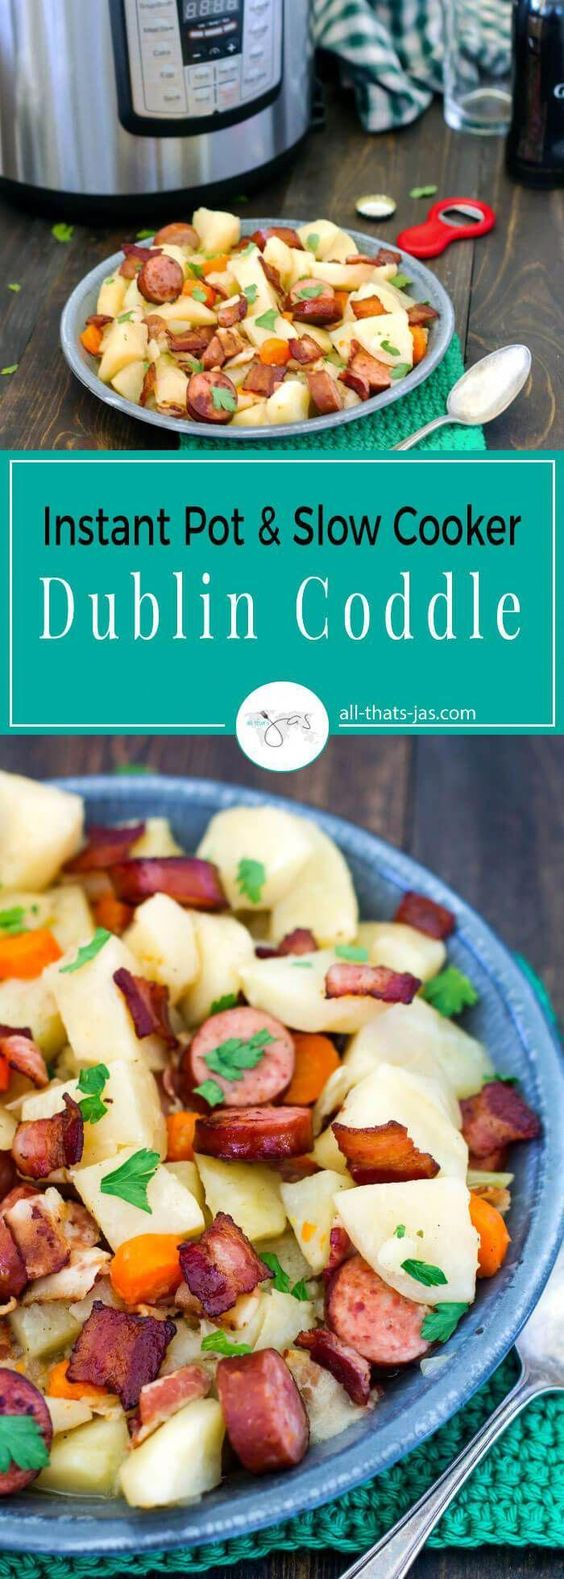 Instant Pot and Slow Cooker Dublin Coddle